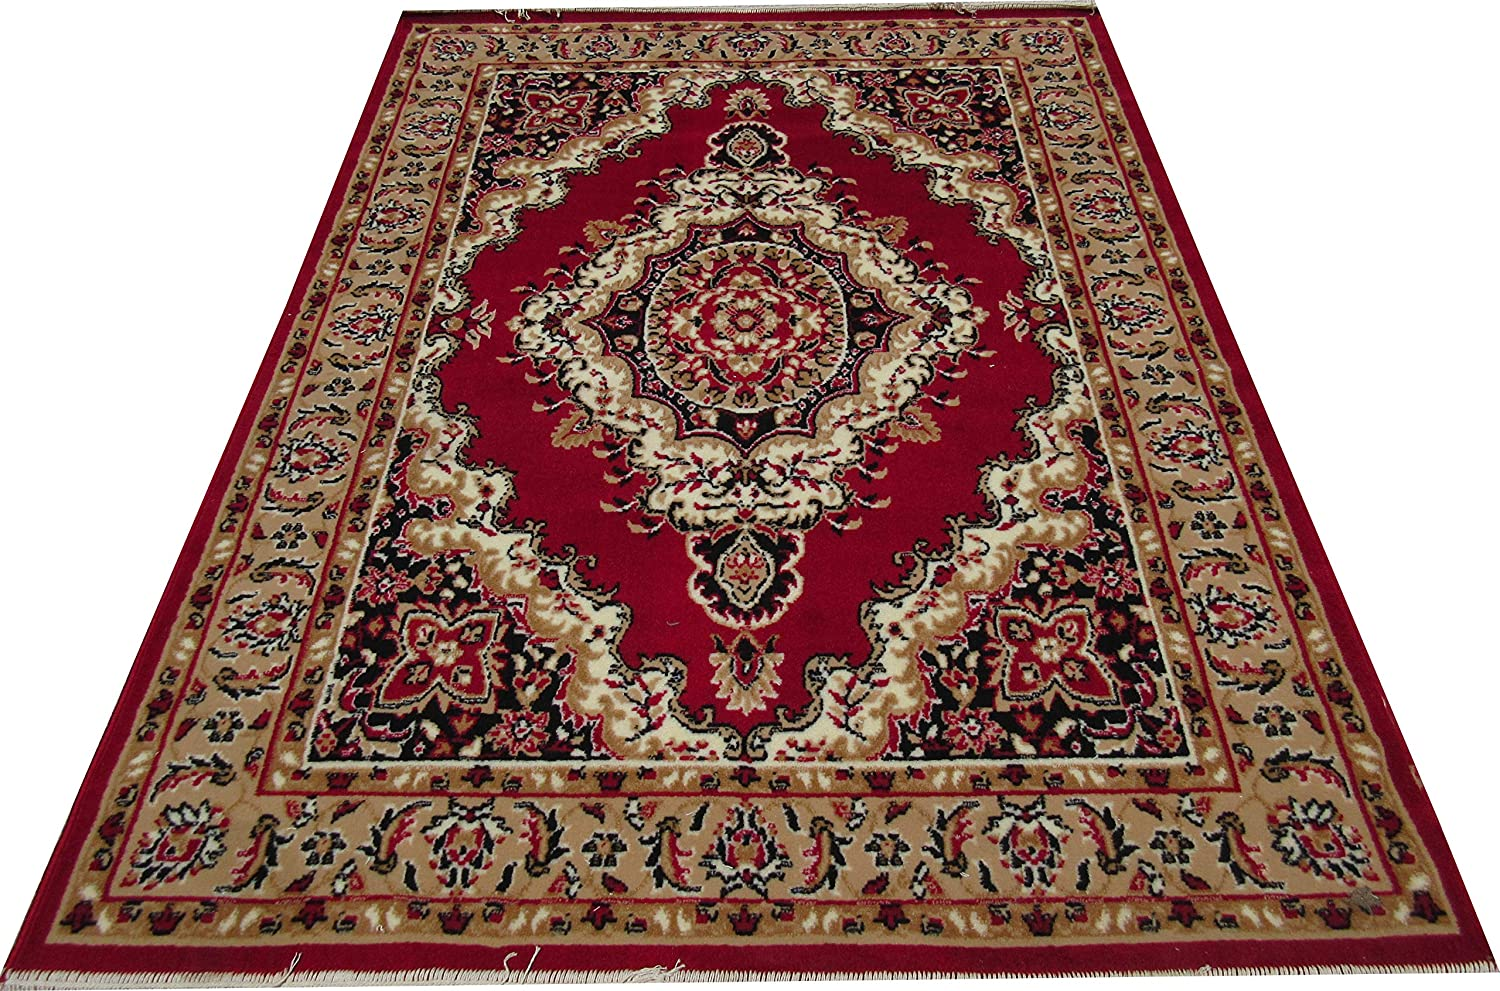 Buy Zia Carpets Most Prefer Floral Design Carpet 5 X7 (150X200 cm.) Red Online at Low Prices in India - Amazon.in